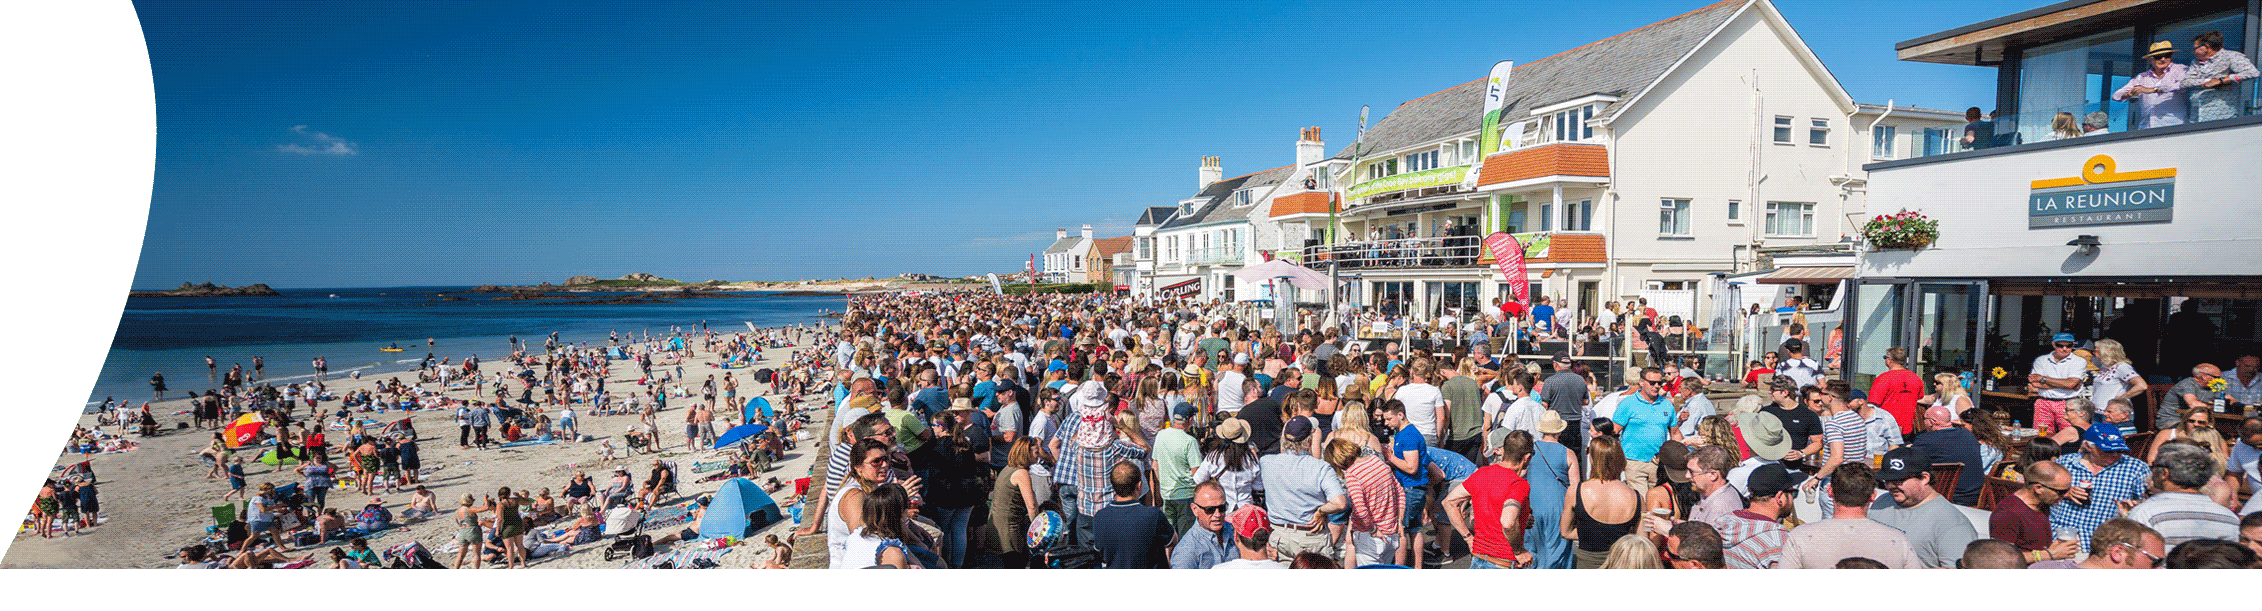 summer-events-guernsey